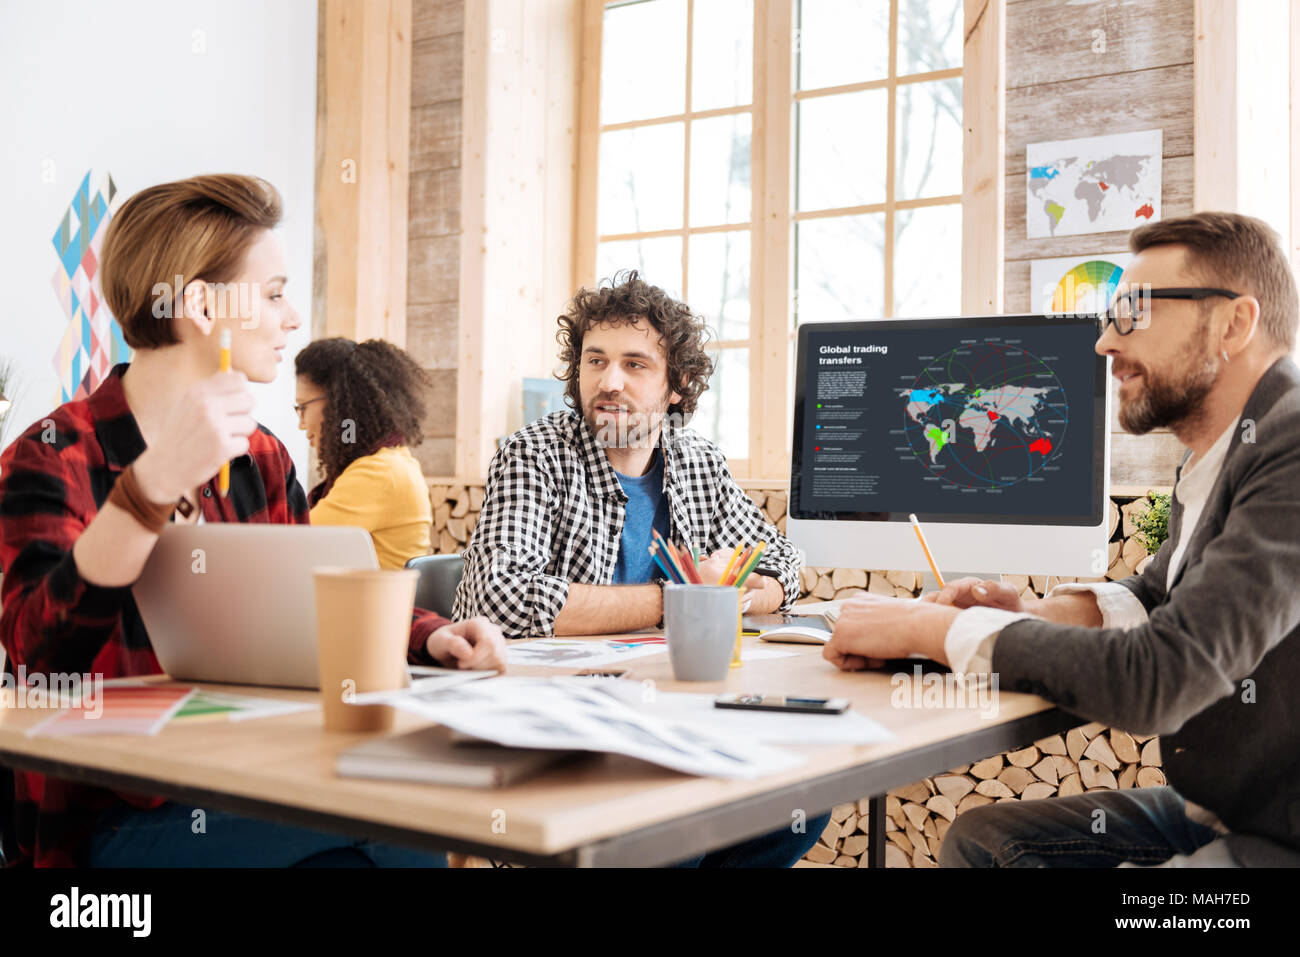 Serious man discussing work his co-workers - Stock Image